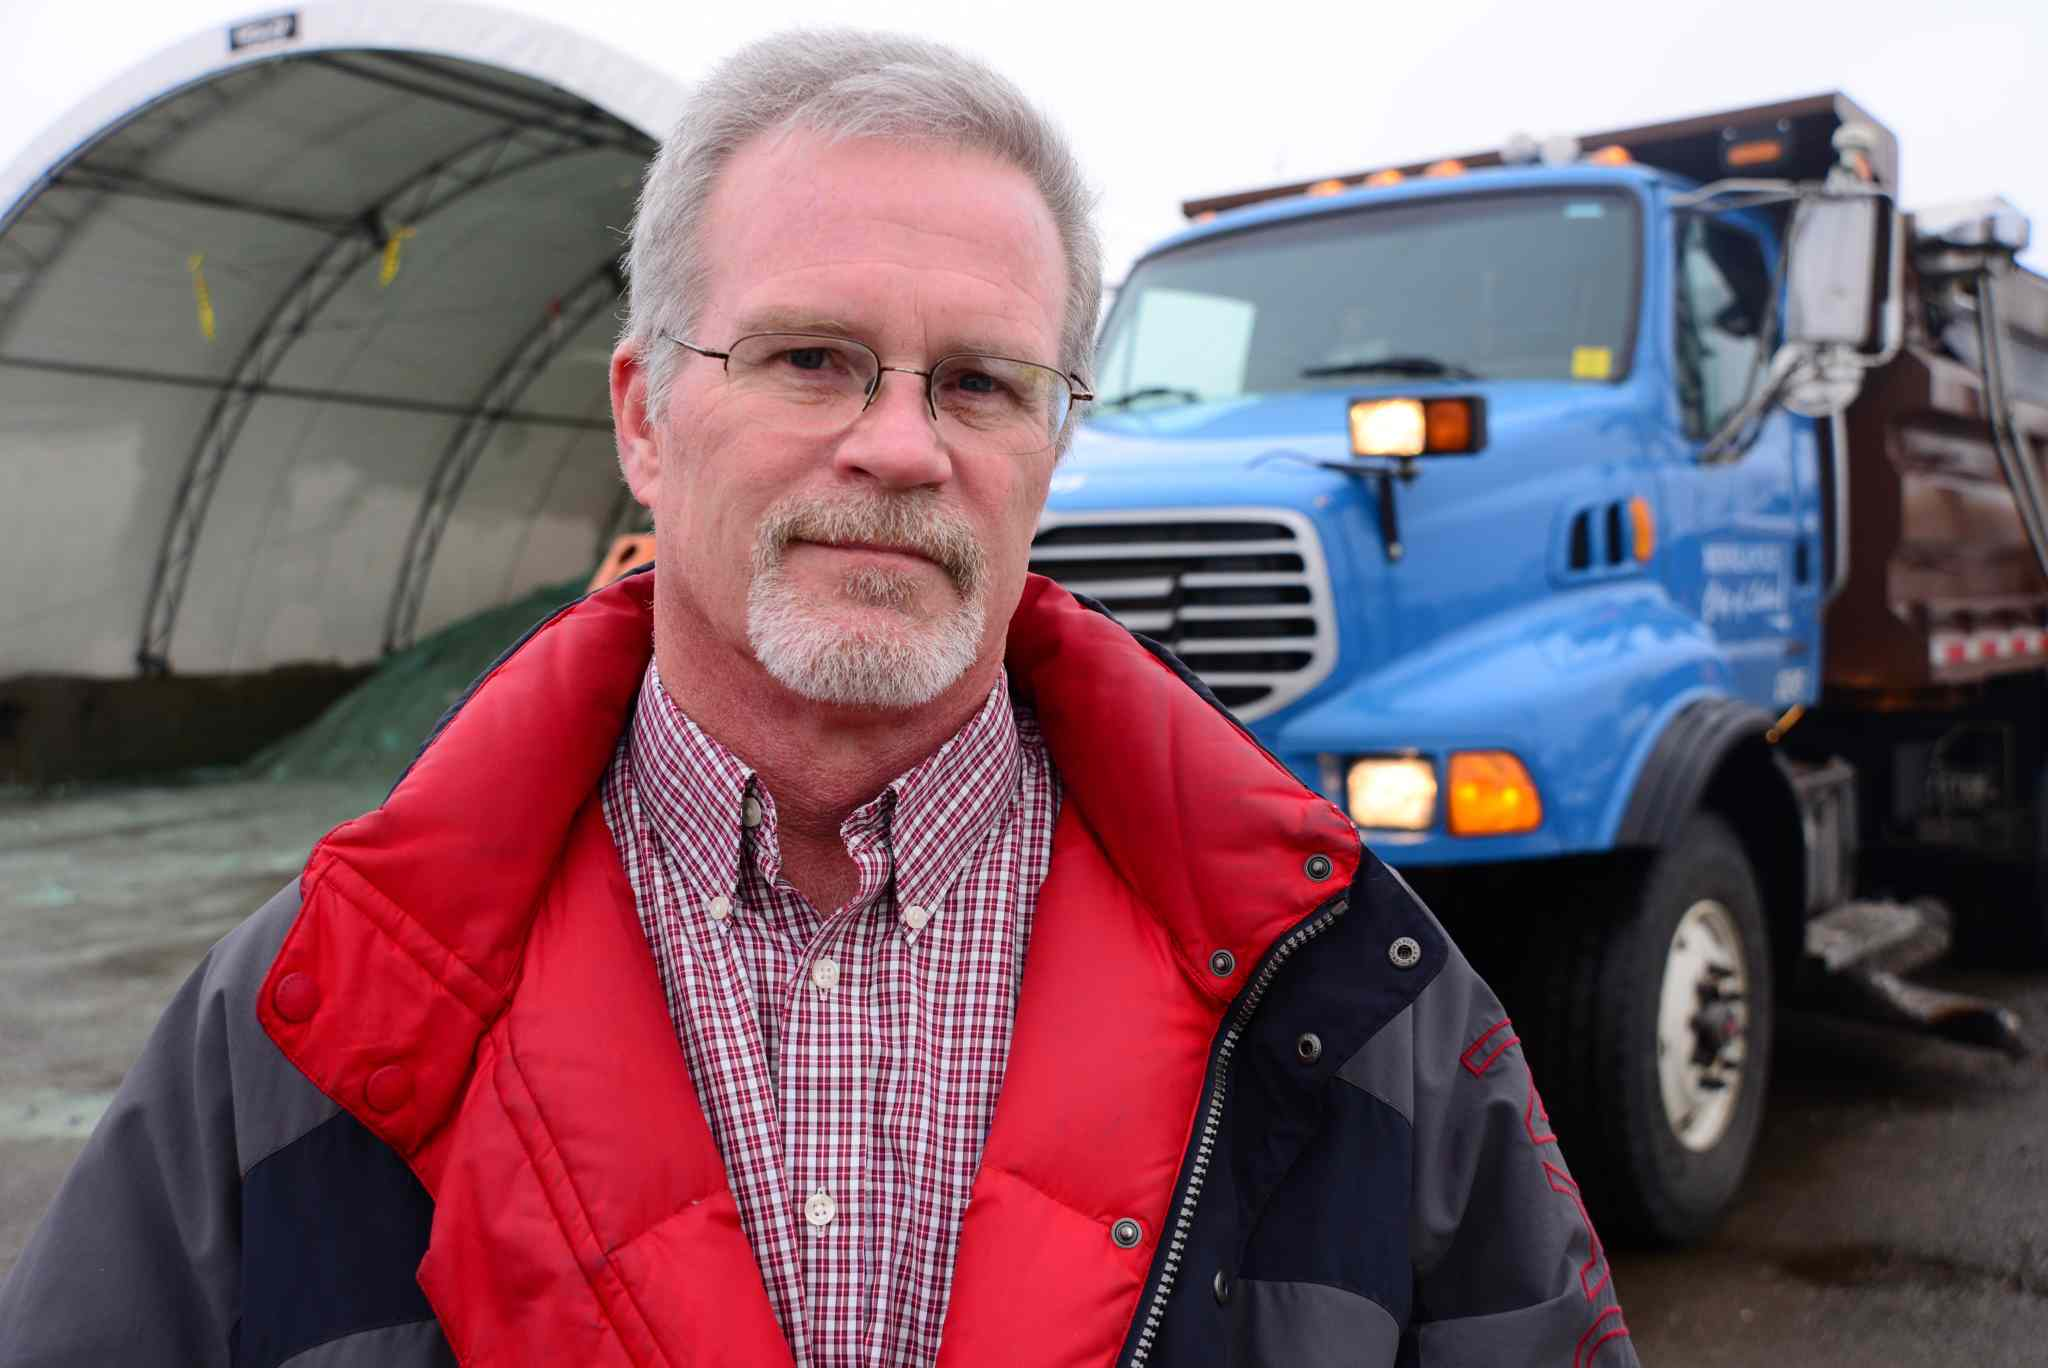 Mike Kennedy, Minneapolis' director of transportation, maintenance and repair, has worked for the city for 28 years. Submitted image